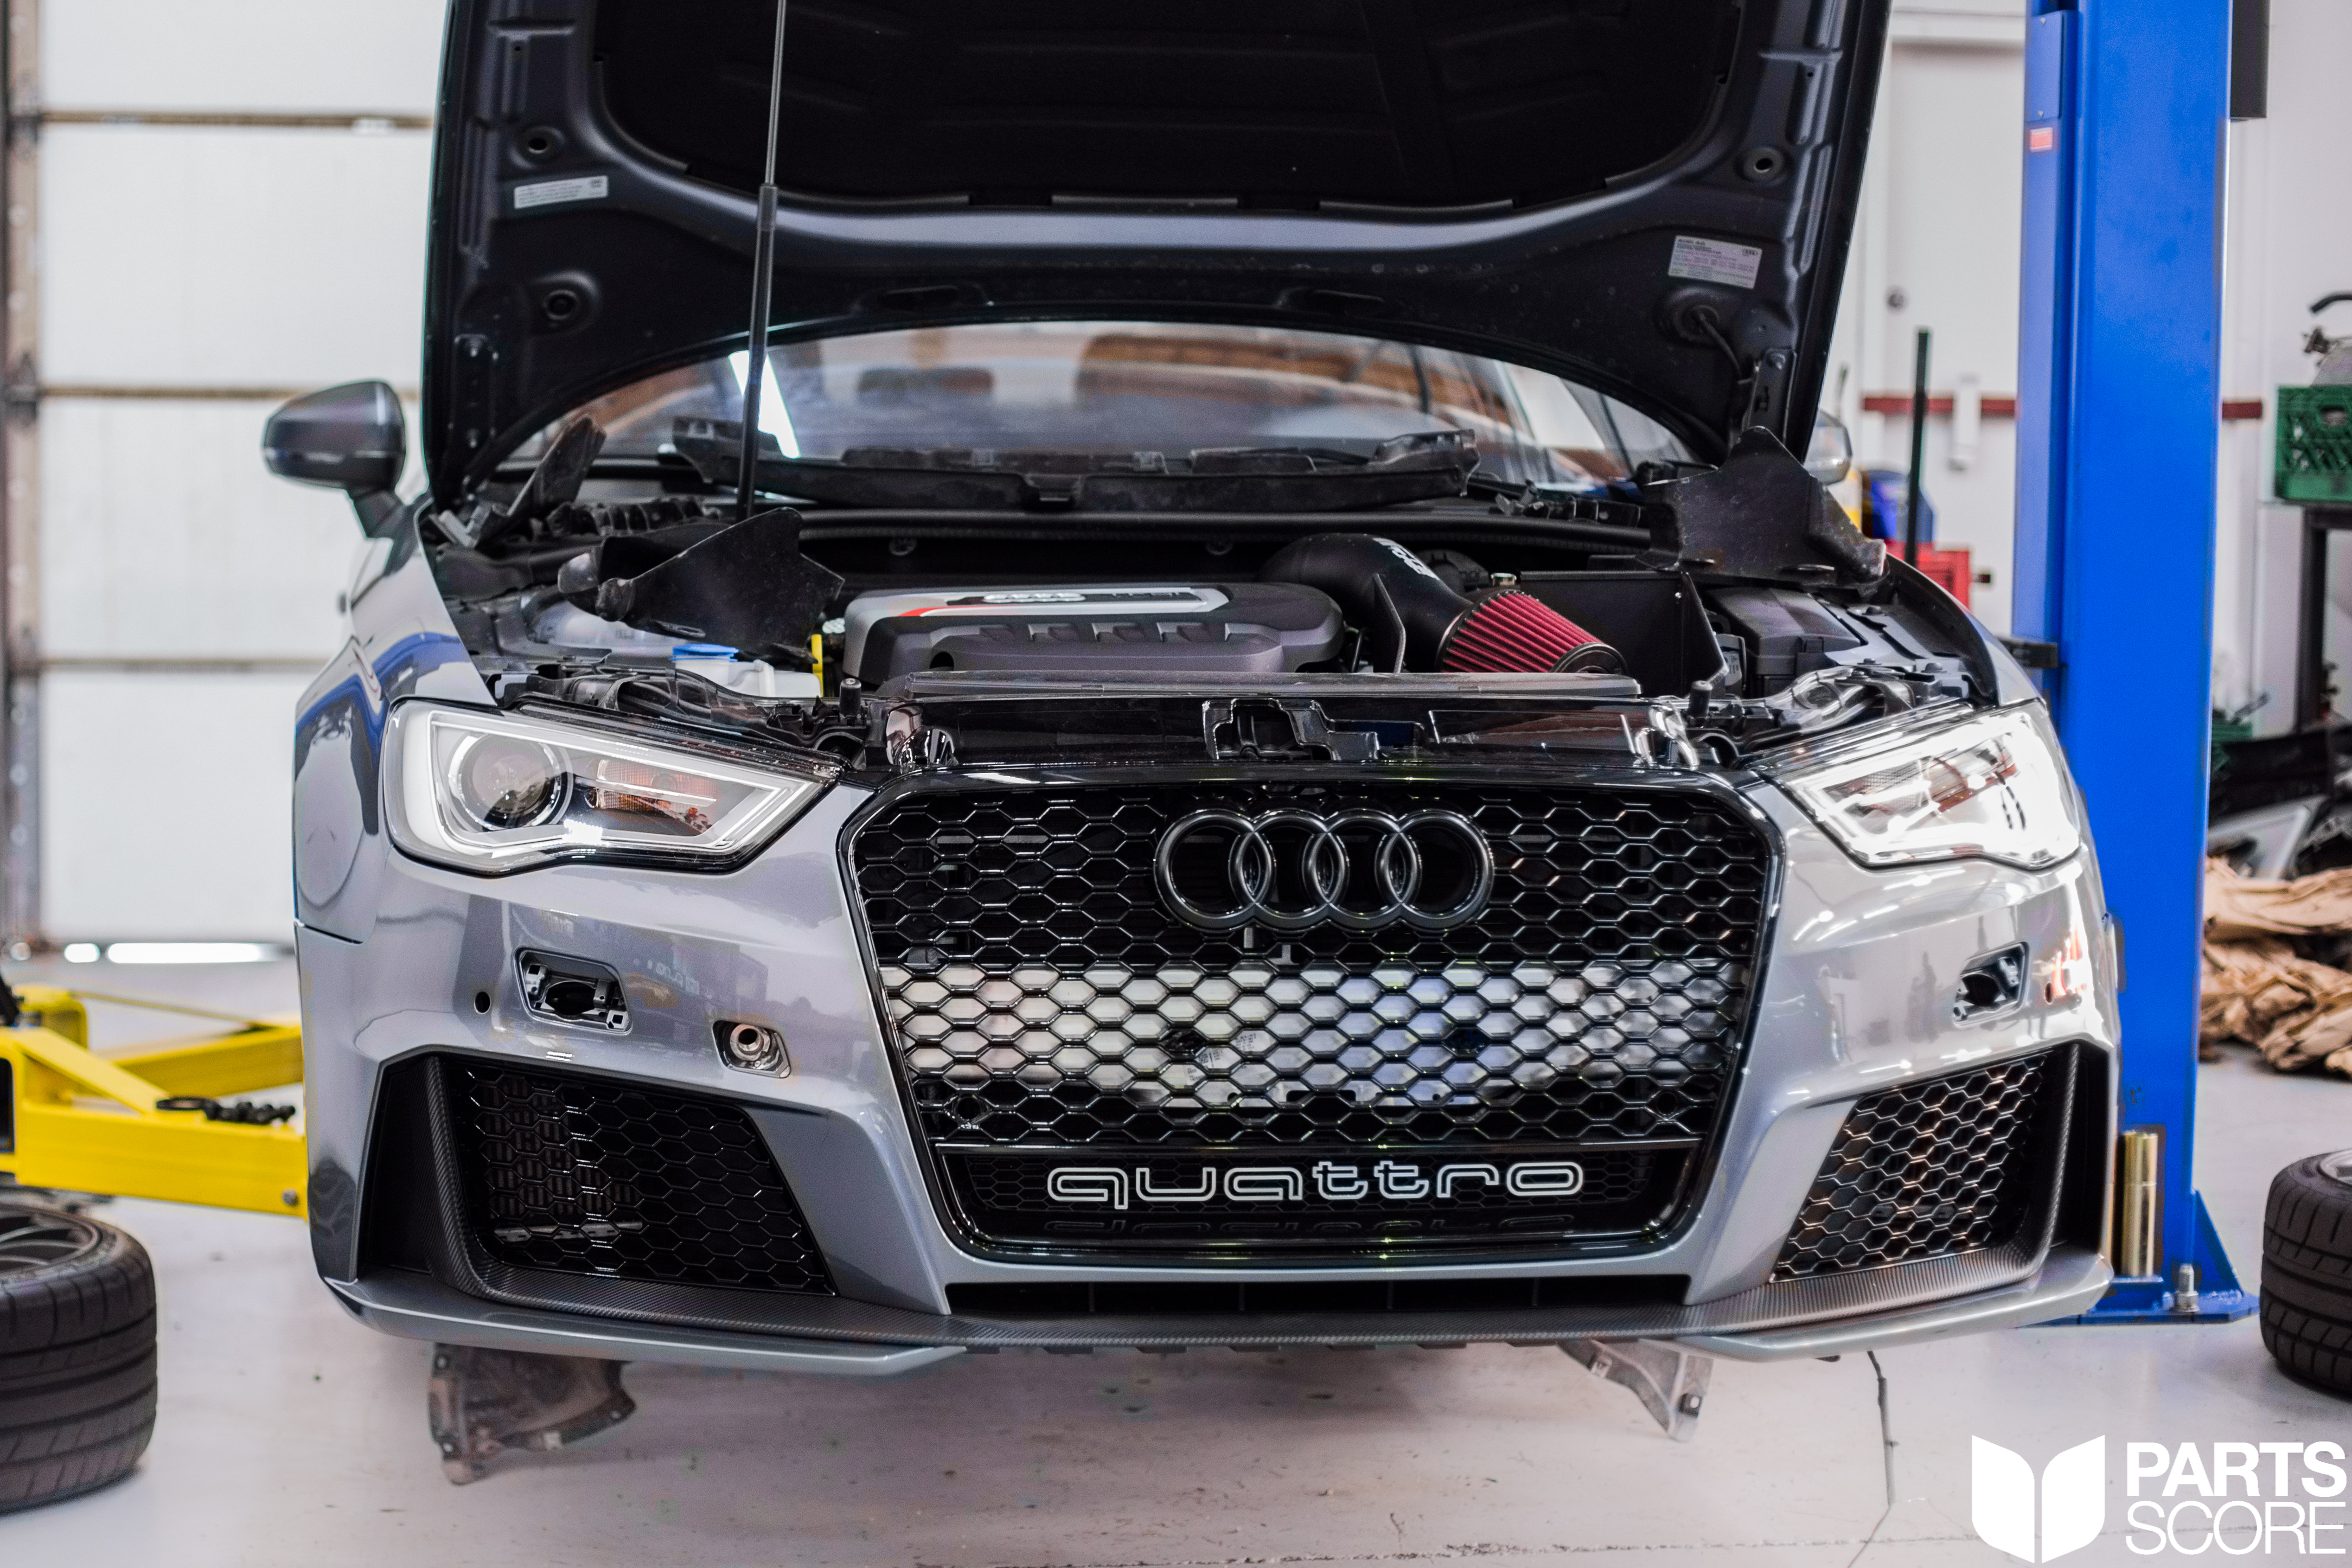 Partsscore, audi, audis3, s3, audirs3, quattro, giac, giactuned, audigramm, audiofficial, audiquattro, turbo, tfsi, 8v, 034motorsports, eurocode, bull, downpipe, bull, ctsturbo, cts, ctsturbointake, ecodes, rs3bumper, stcoilovers, st, kw, kwv3, kwcoilovers, stage2, stagetwo, cts, underdrive, pulley, pulley, boost, awd, allwheeldrive, audia3, a3,